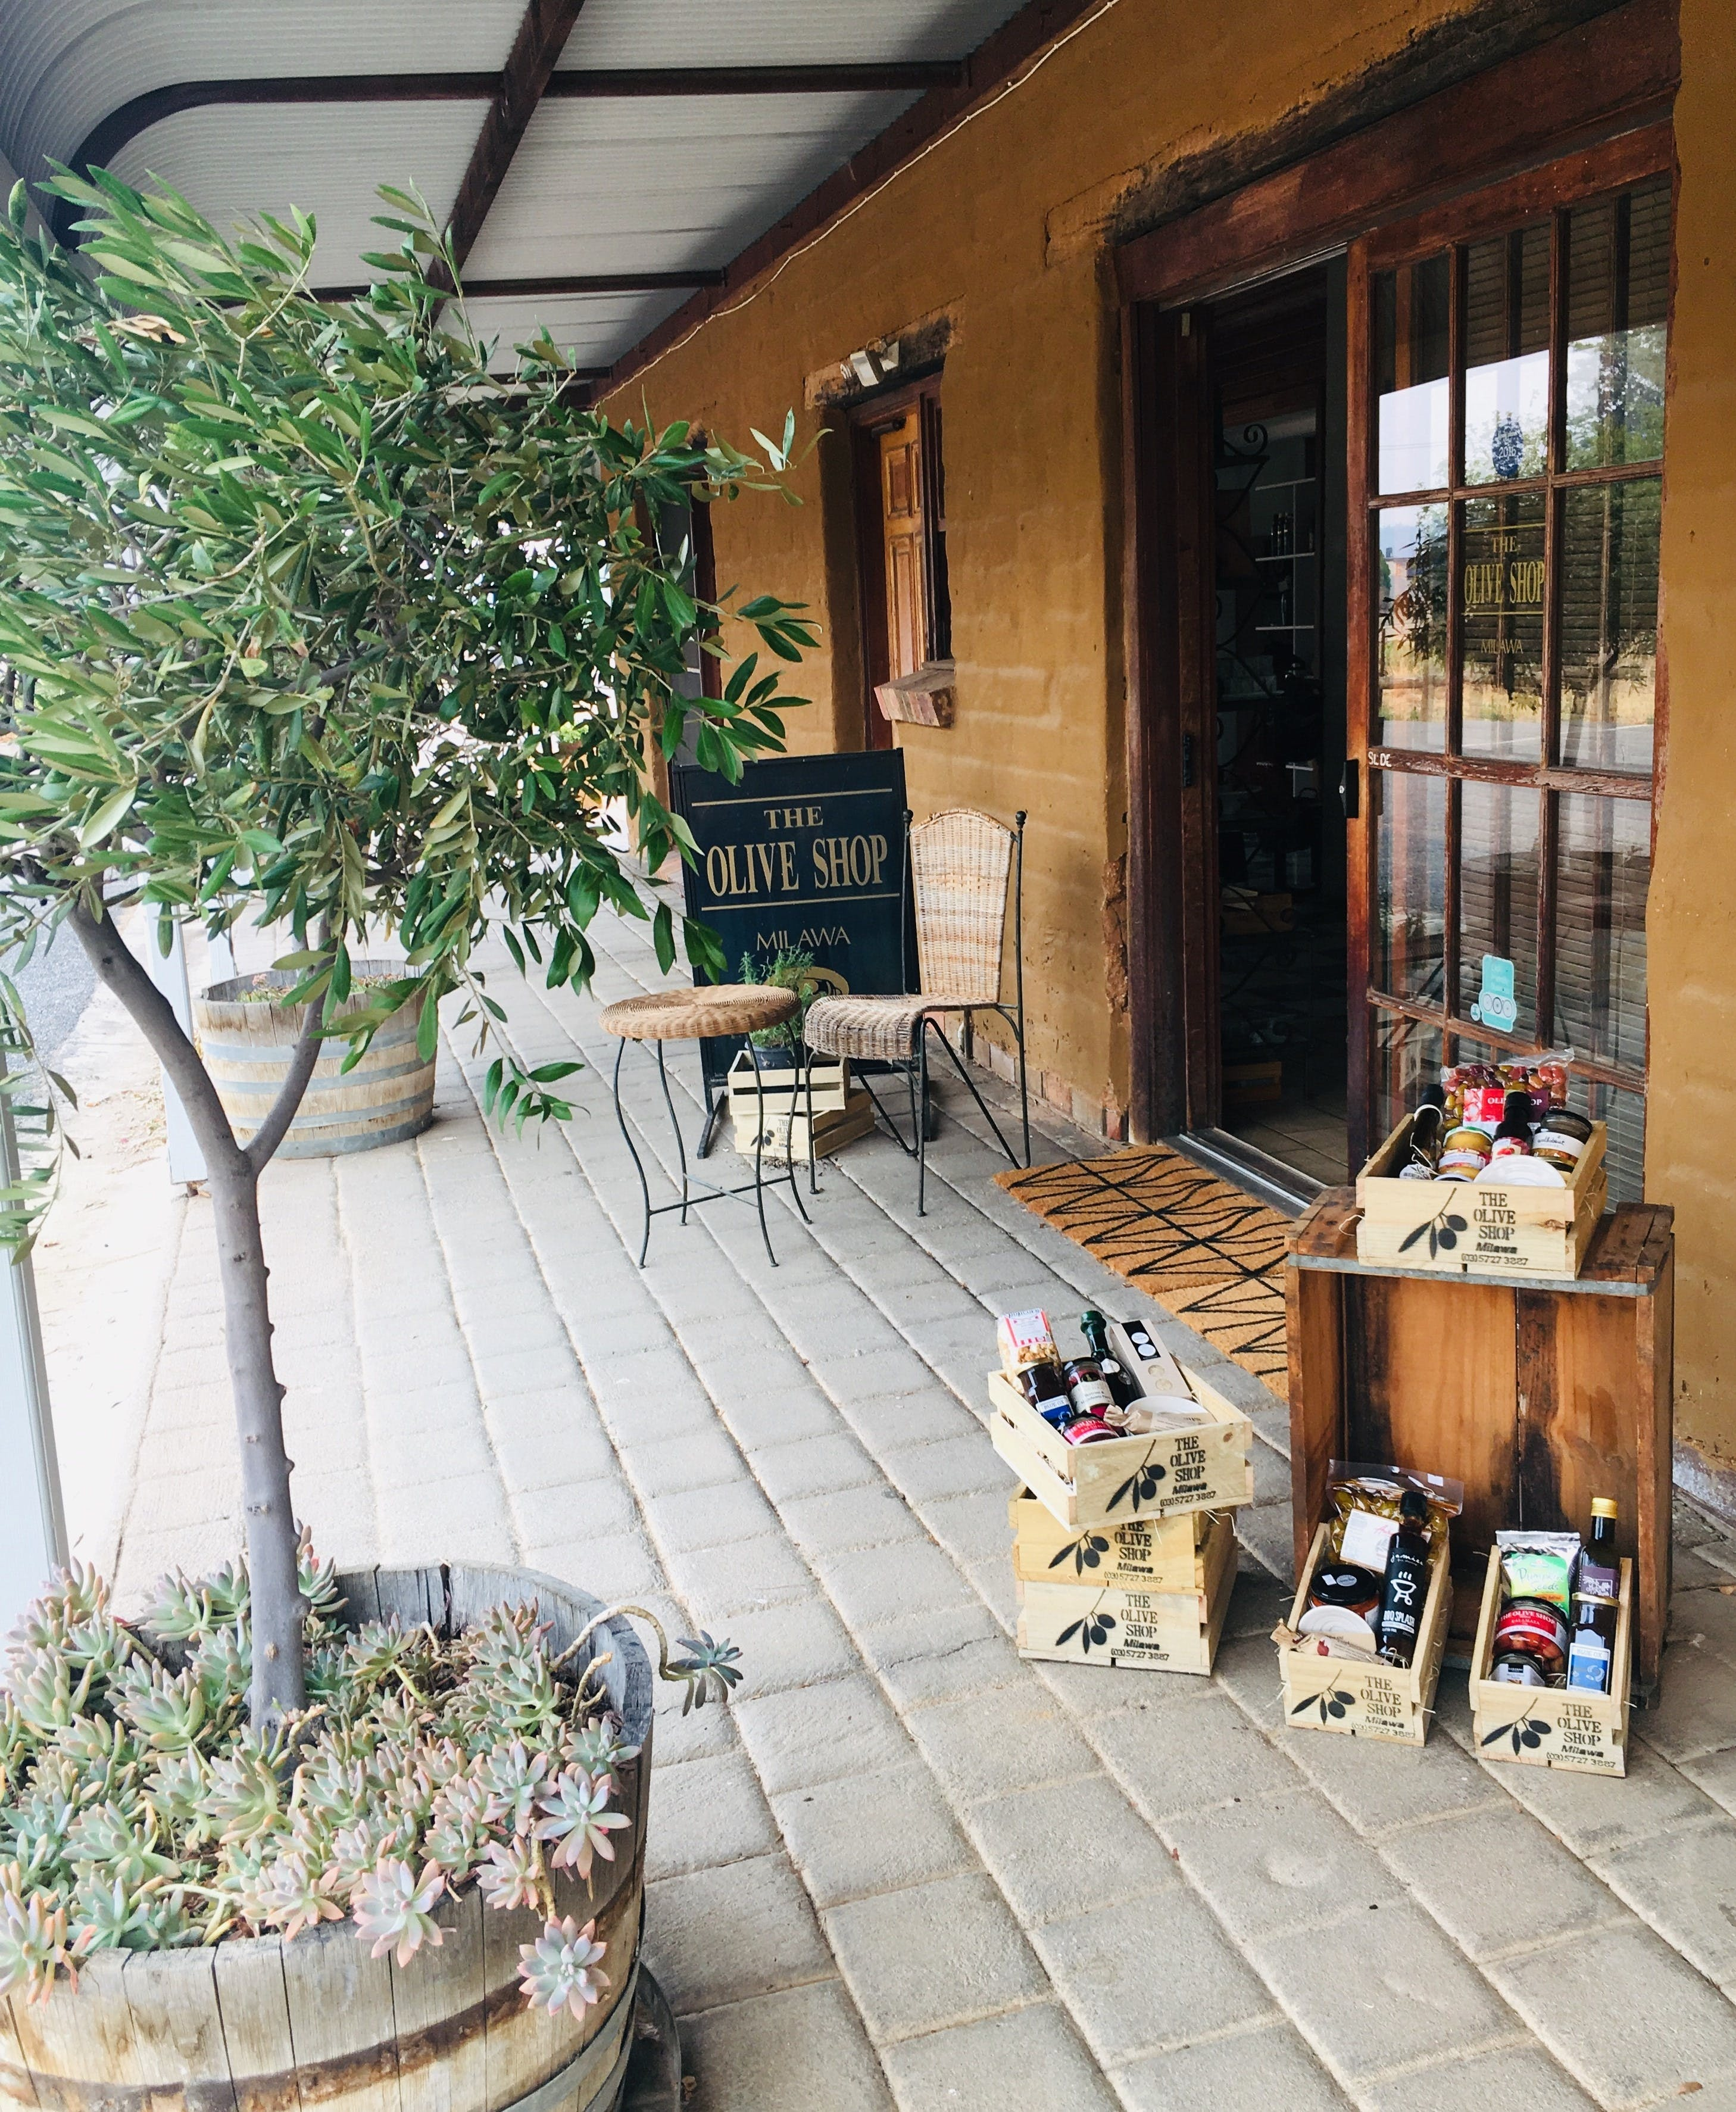 The Olive Shop - Milawa - Accommodation Search